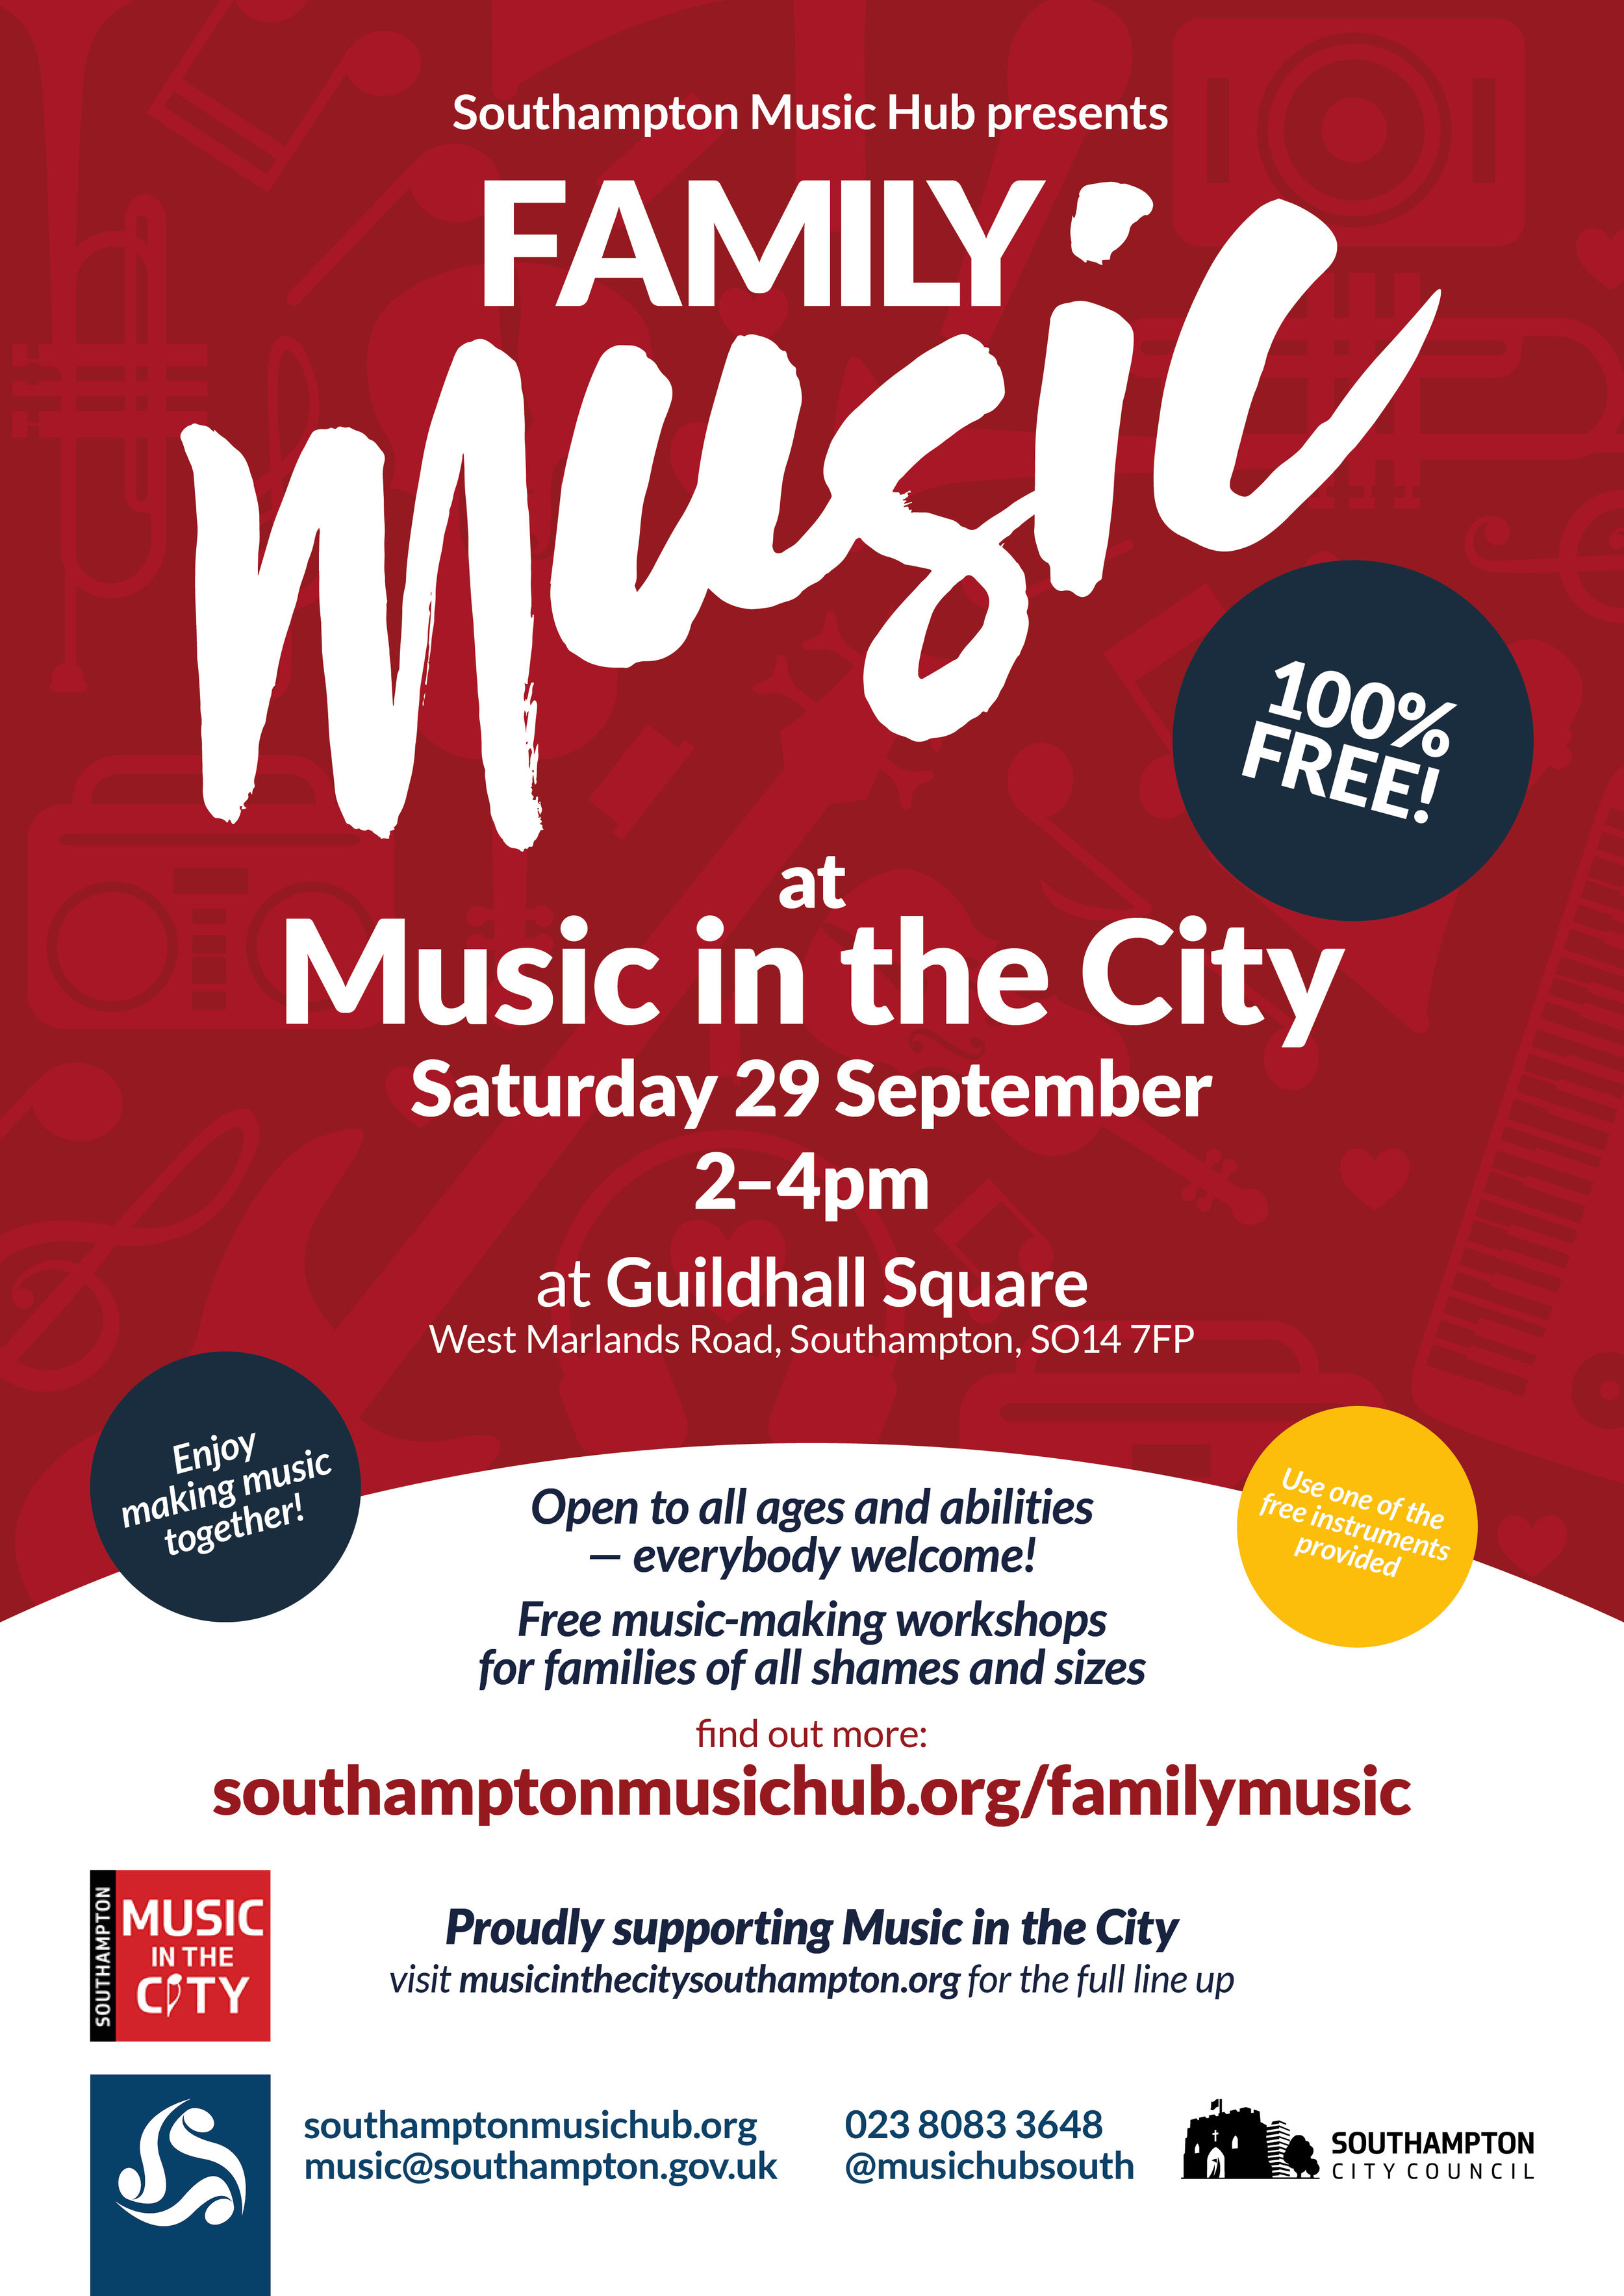 Music in the City 2018 Flyer.jpg